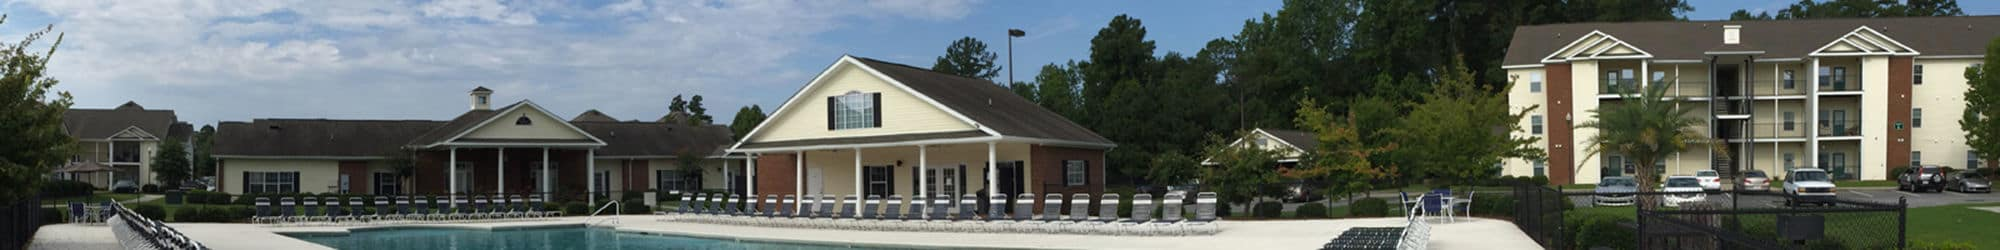 Pet friendly apartments in Valdosta